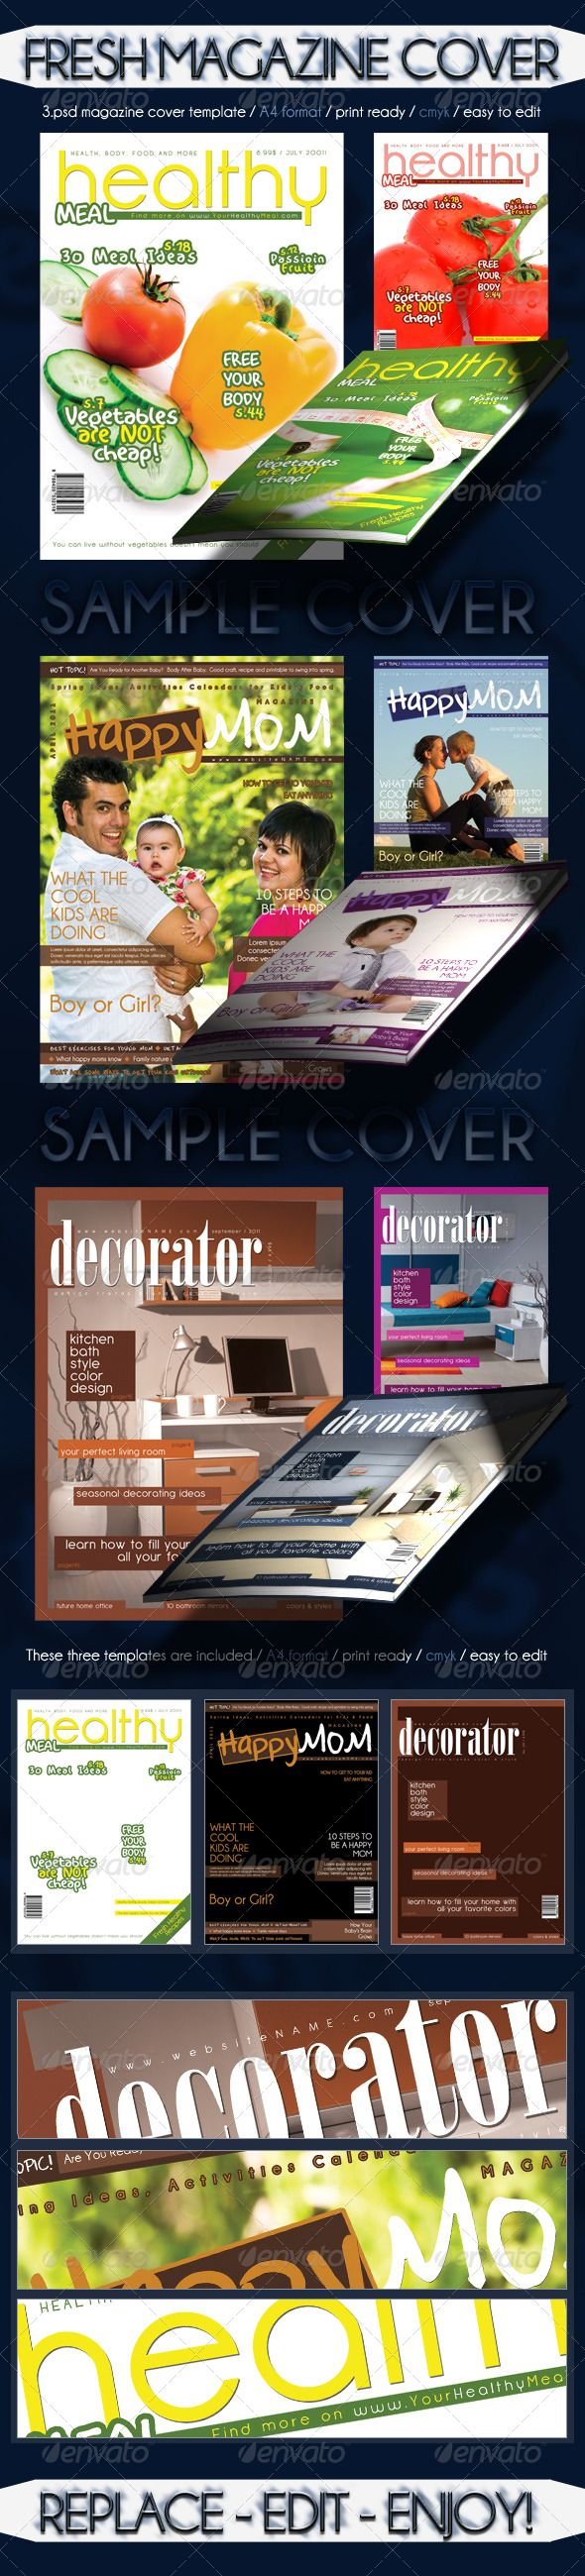 magazine covers template